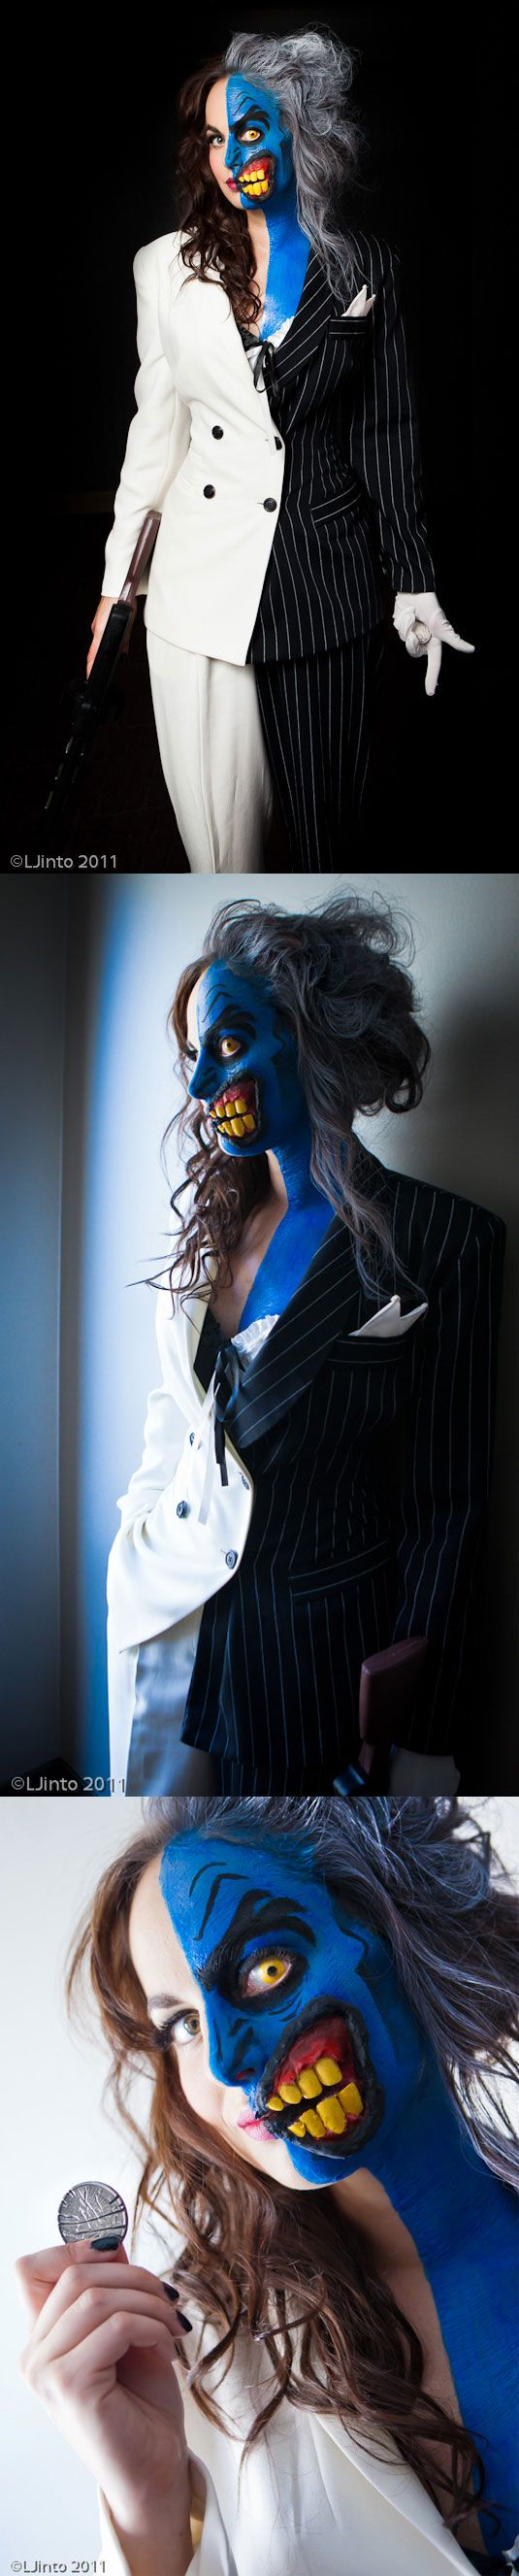 The 272 best images about Halloween make up/Costumes on Pinterest ...